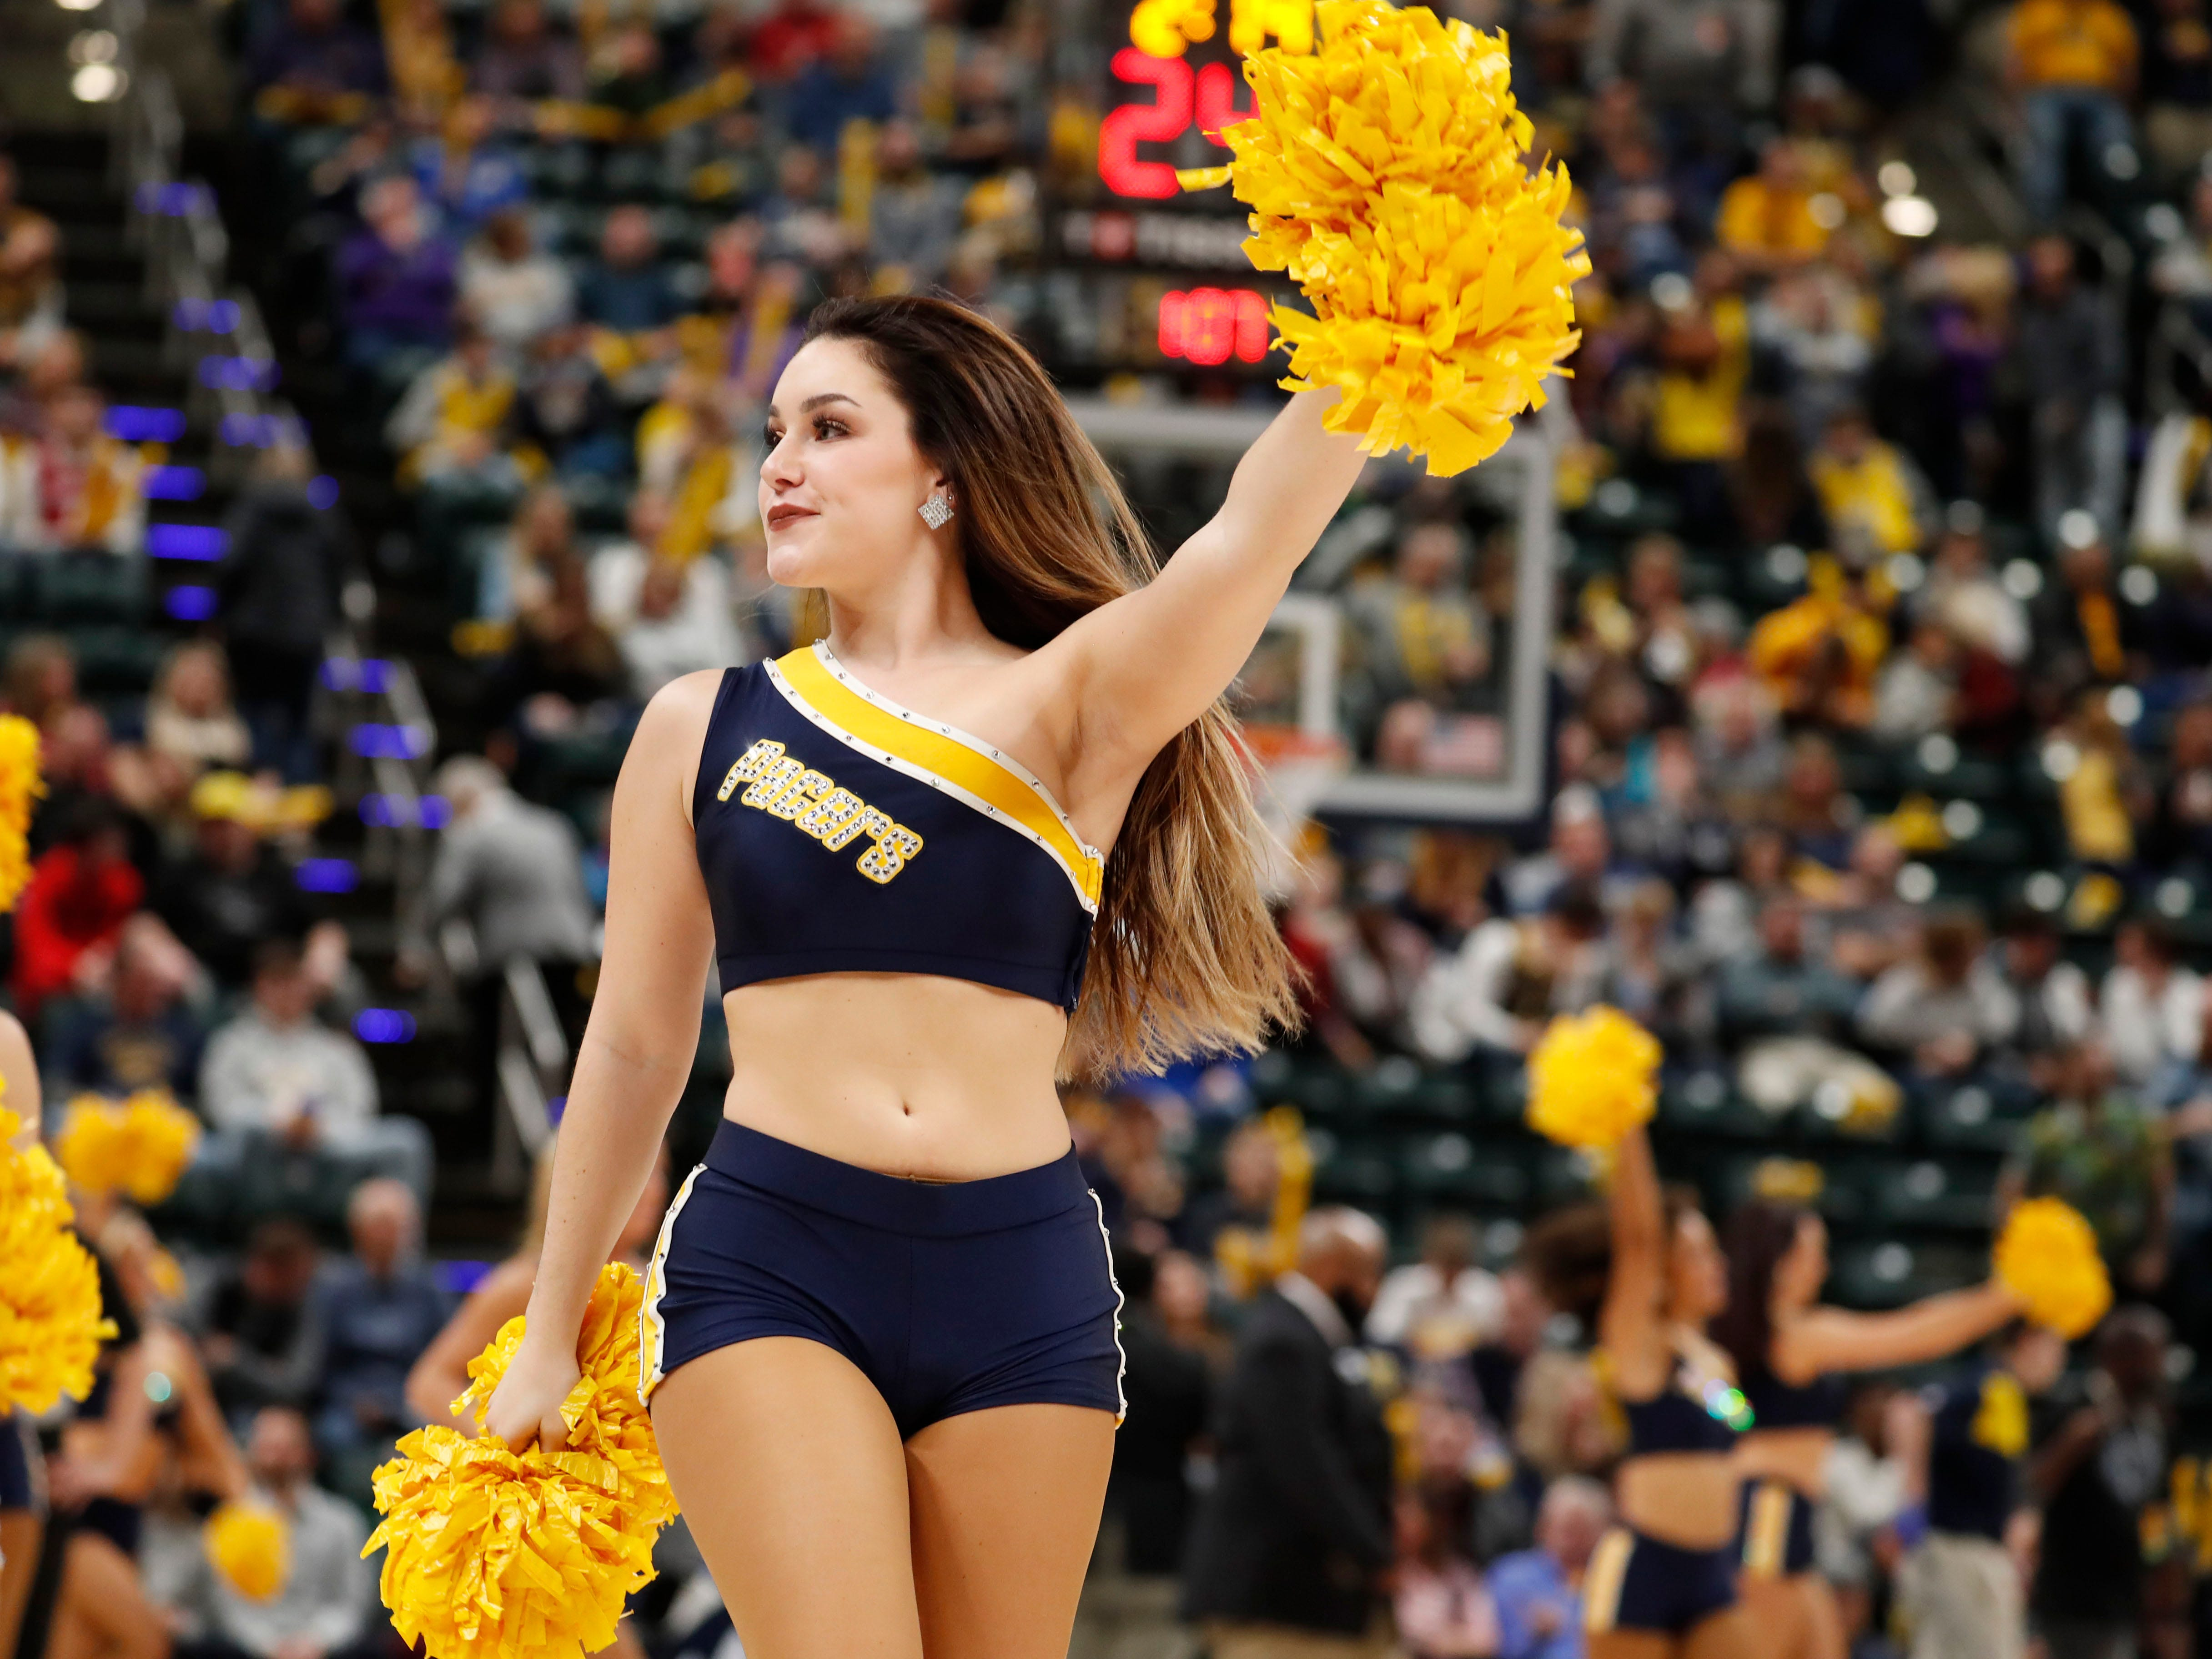 Jan. 20: A Pacers dancer performs a routine during a game against the Hornets.